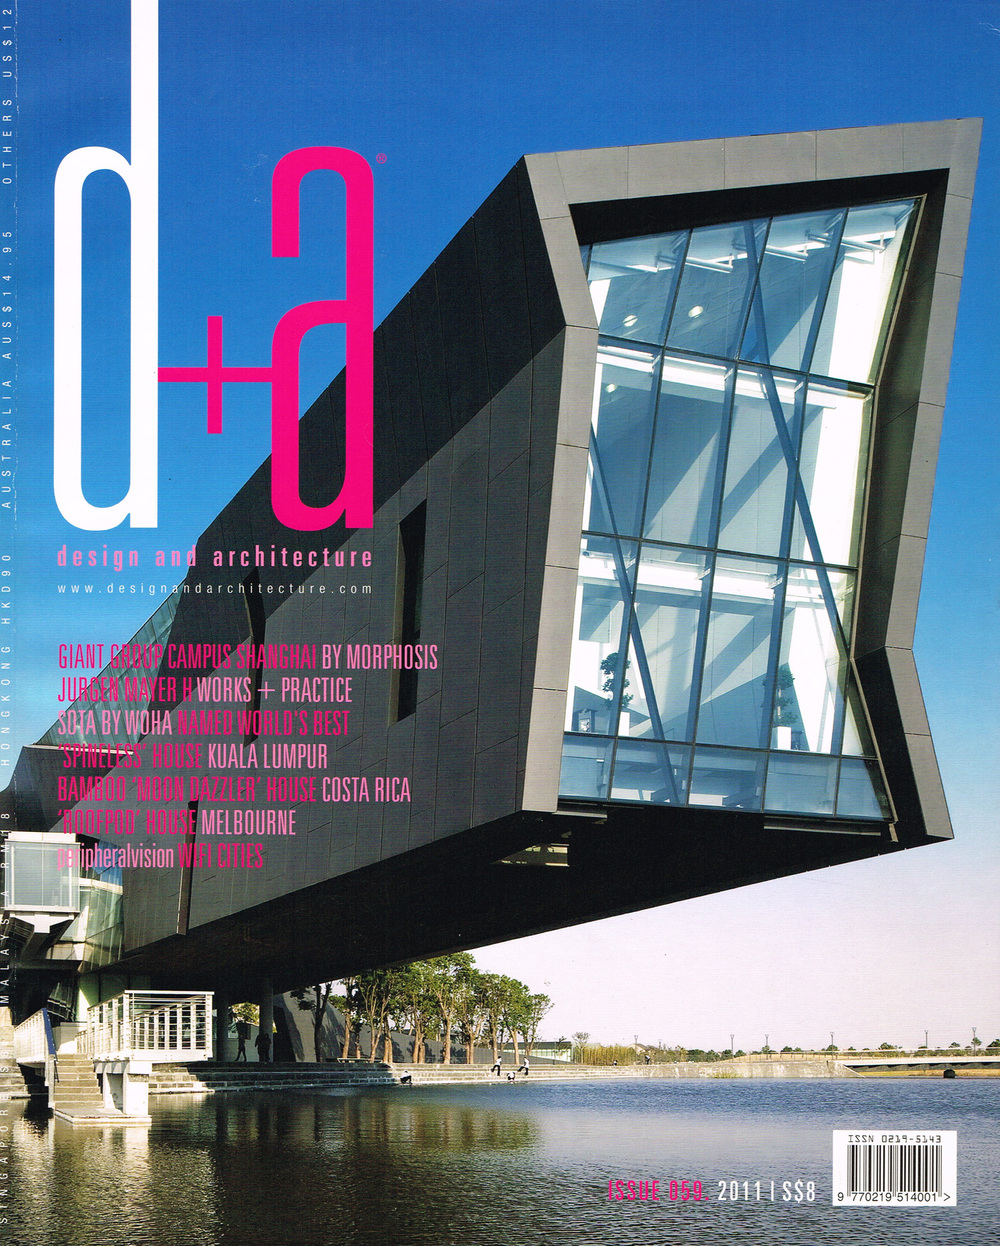 D+A - Magazine Cover(small).jpg